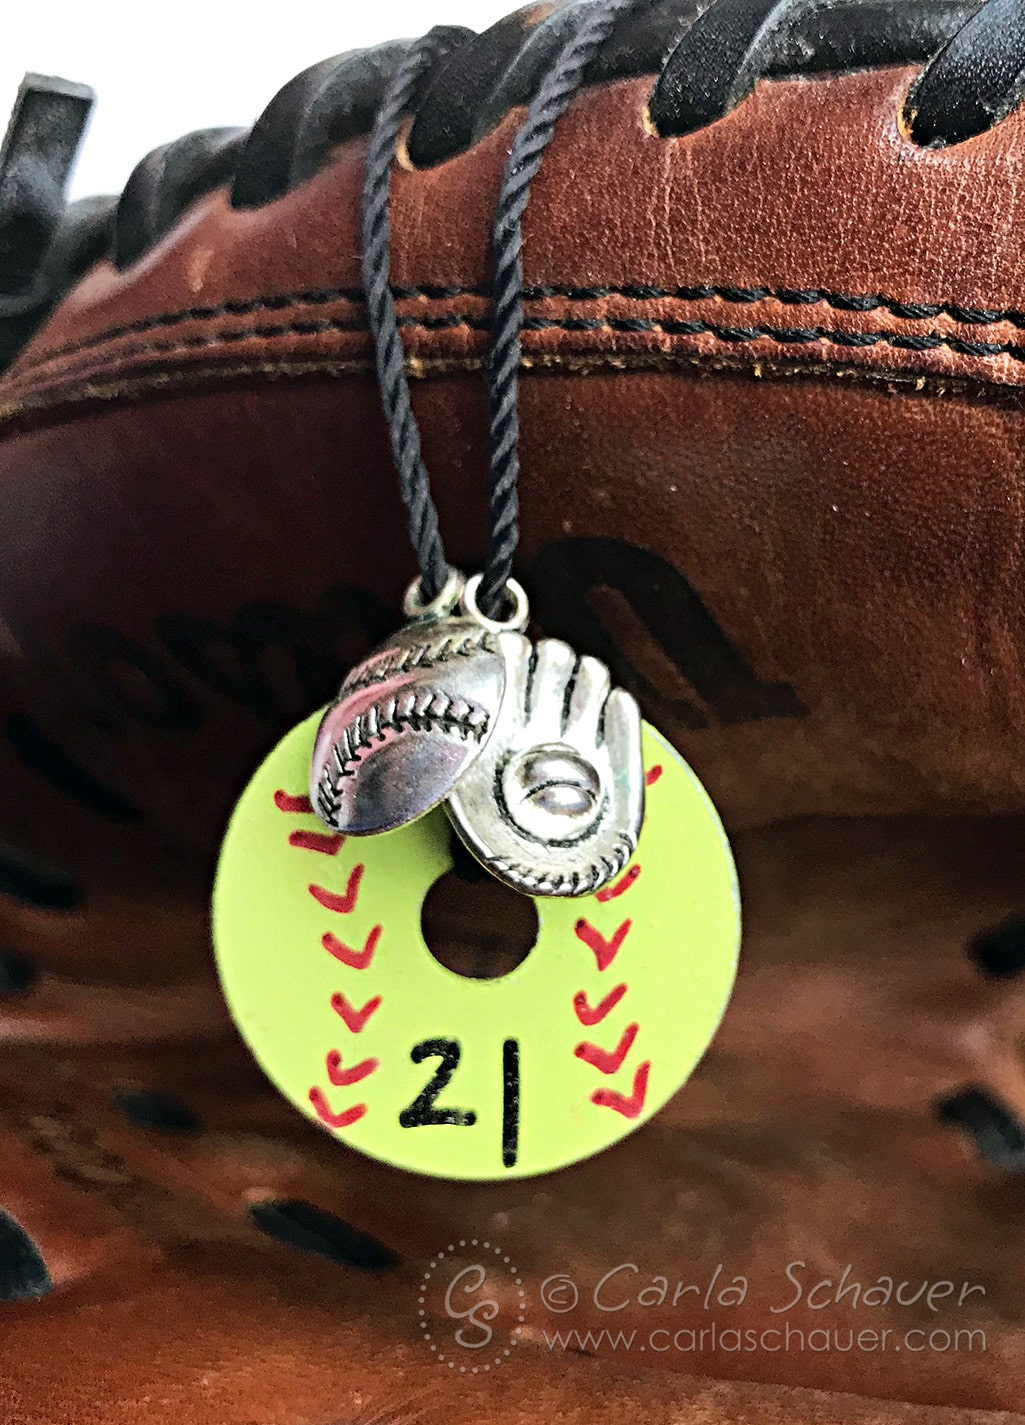 Softball Necklace displayed on softball glove